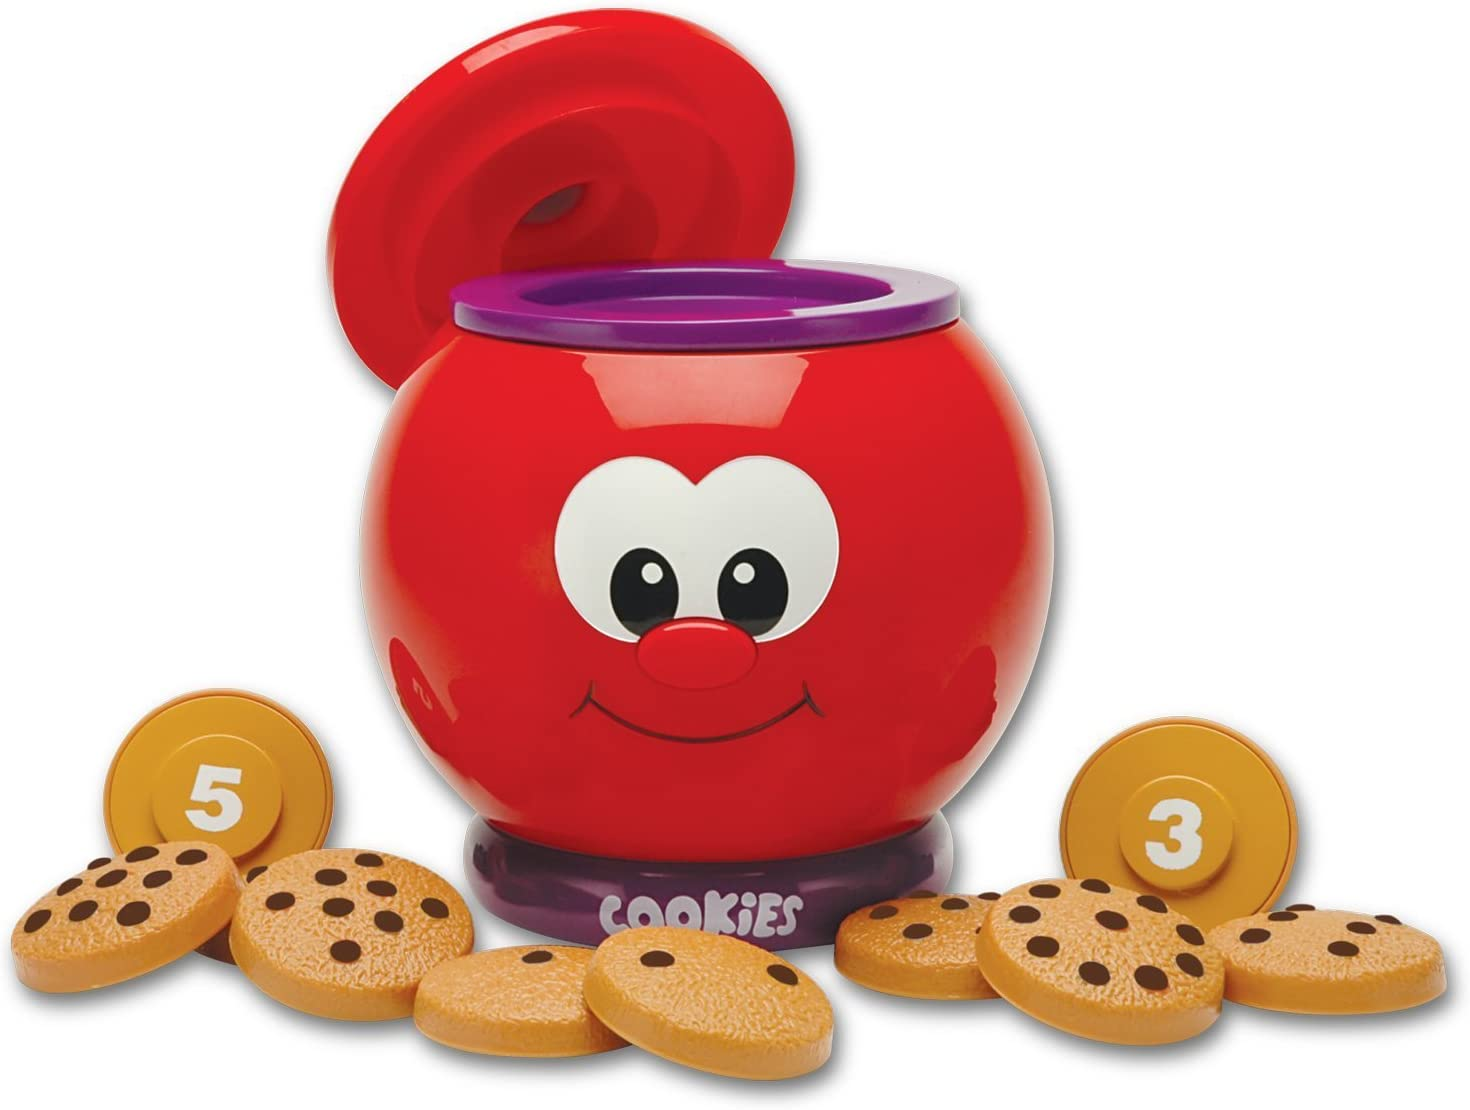 The Learning Journey Learn With Me – Count & Learn Cookie Jar – Counting and Numbers STEM Teaching Toddler Toys & Gifts for Boys & Girls Ages 2 Years and Up – Award Winning Preschool Learning Toy